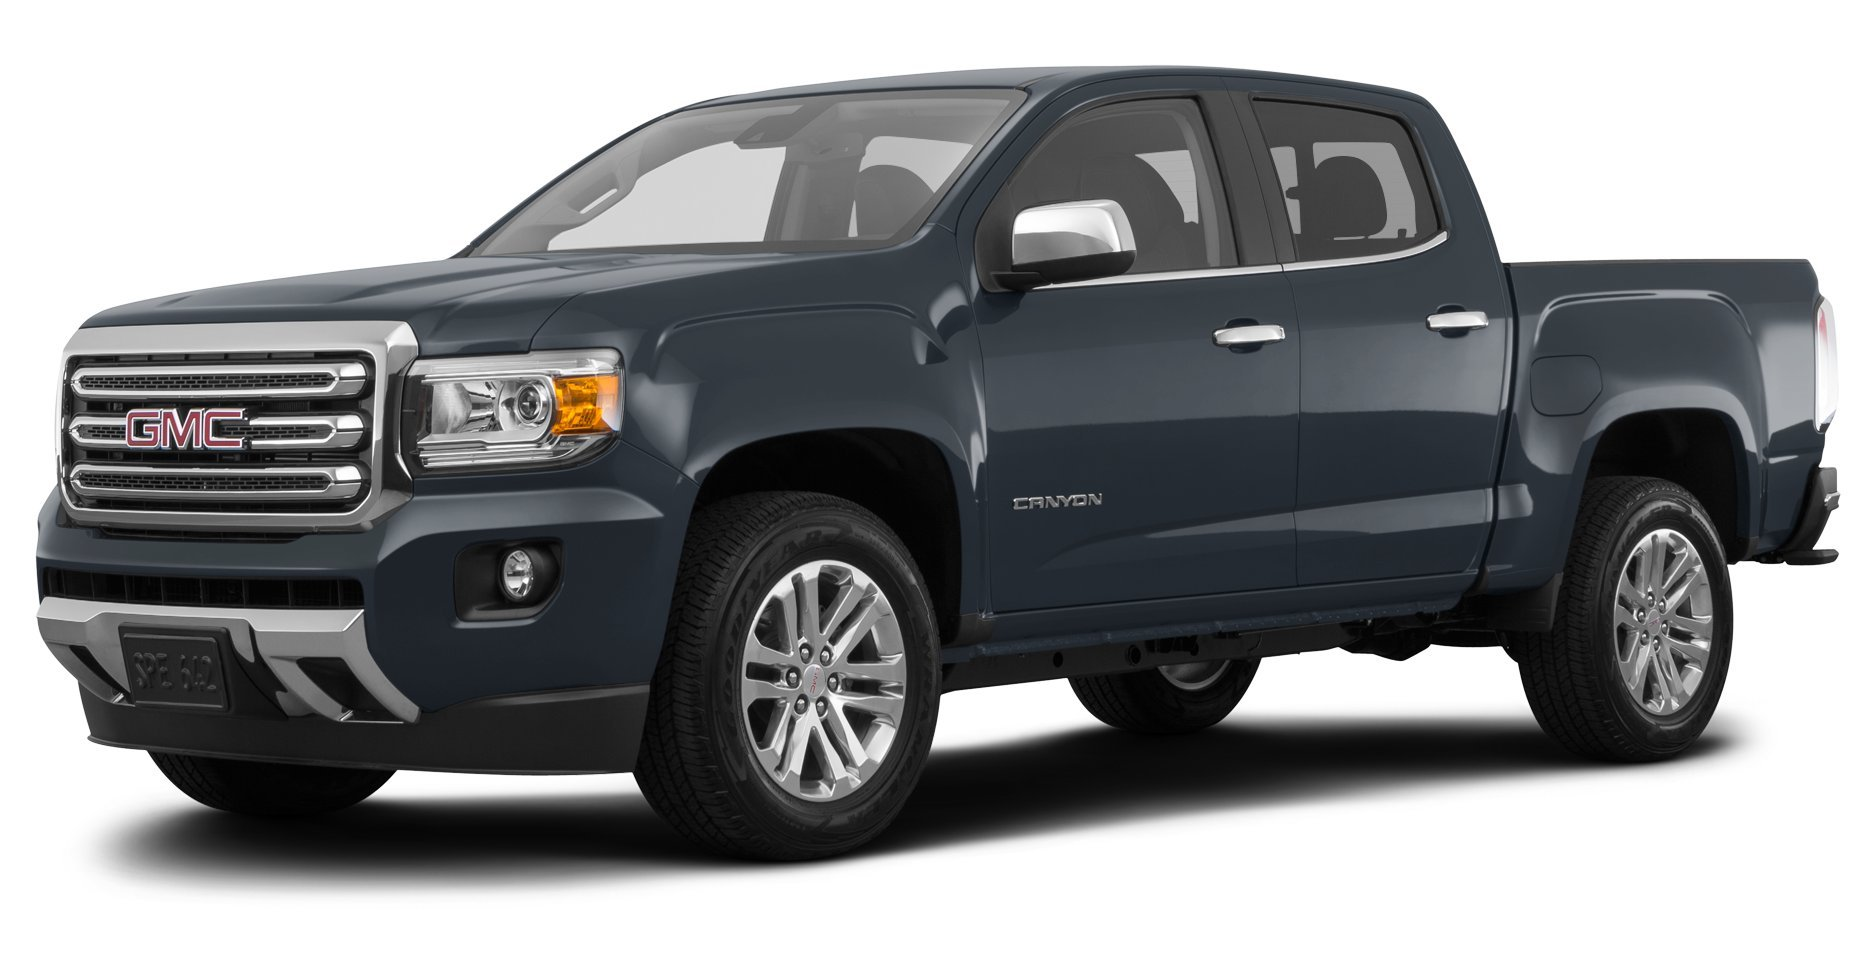 2017 ram 2500 reviews images and specs vehicles. Black Bedroom Furniture Sets. Home Design Ideas